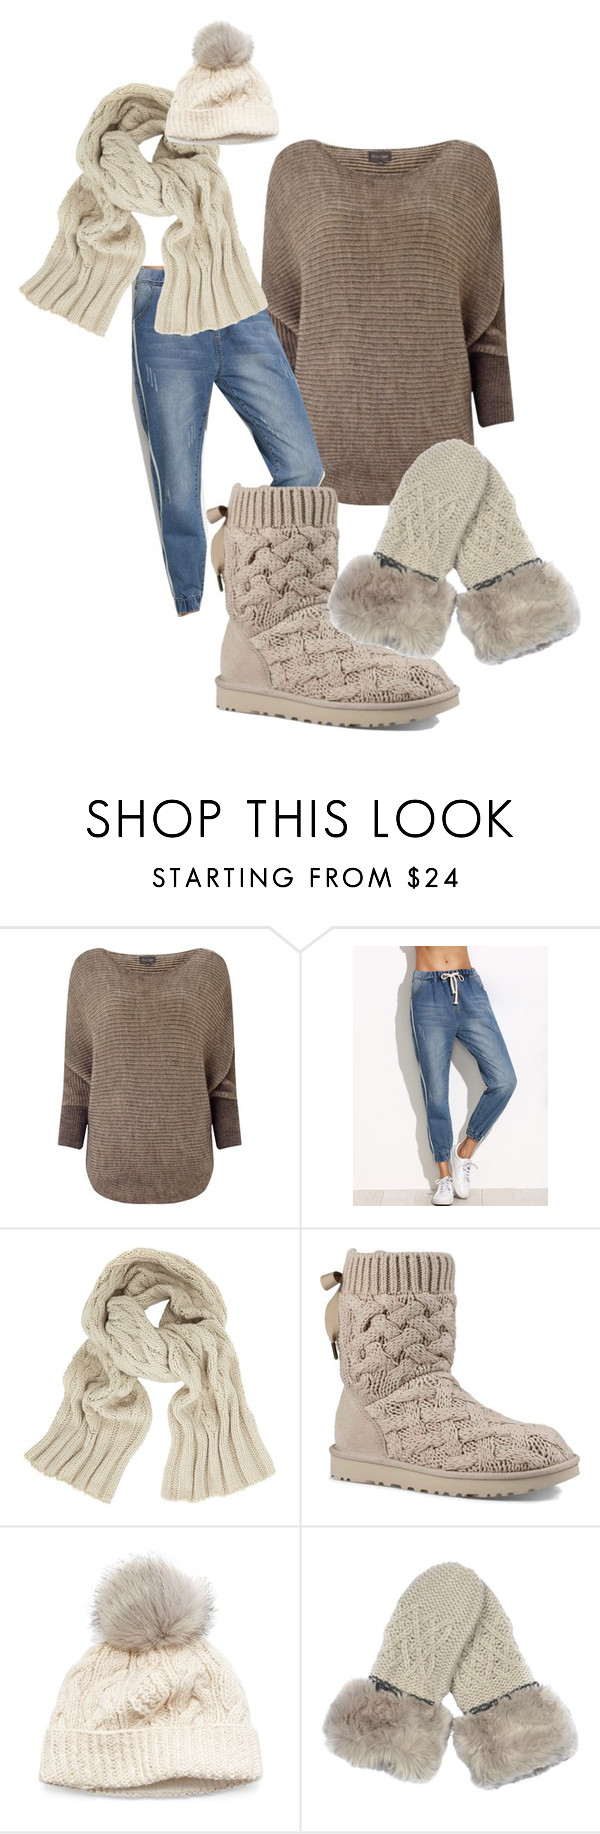 """""""cozy warm outfit with Ugg's"""" by polona-mivsek on Polyvore featuring Phase Eight, John Lewis, UGG and SIJJL"""